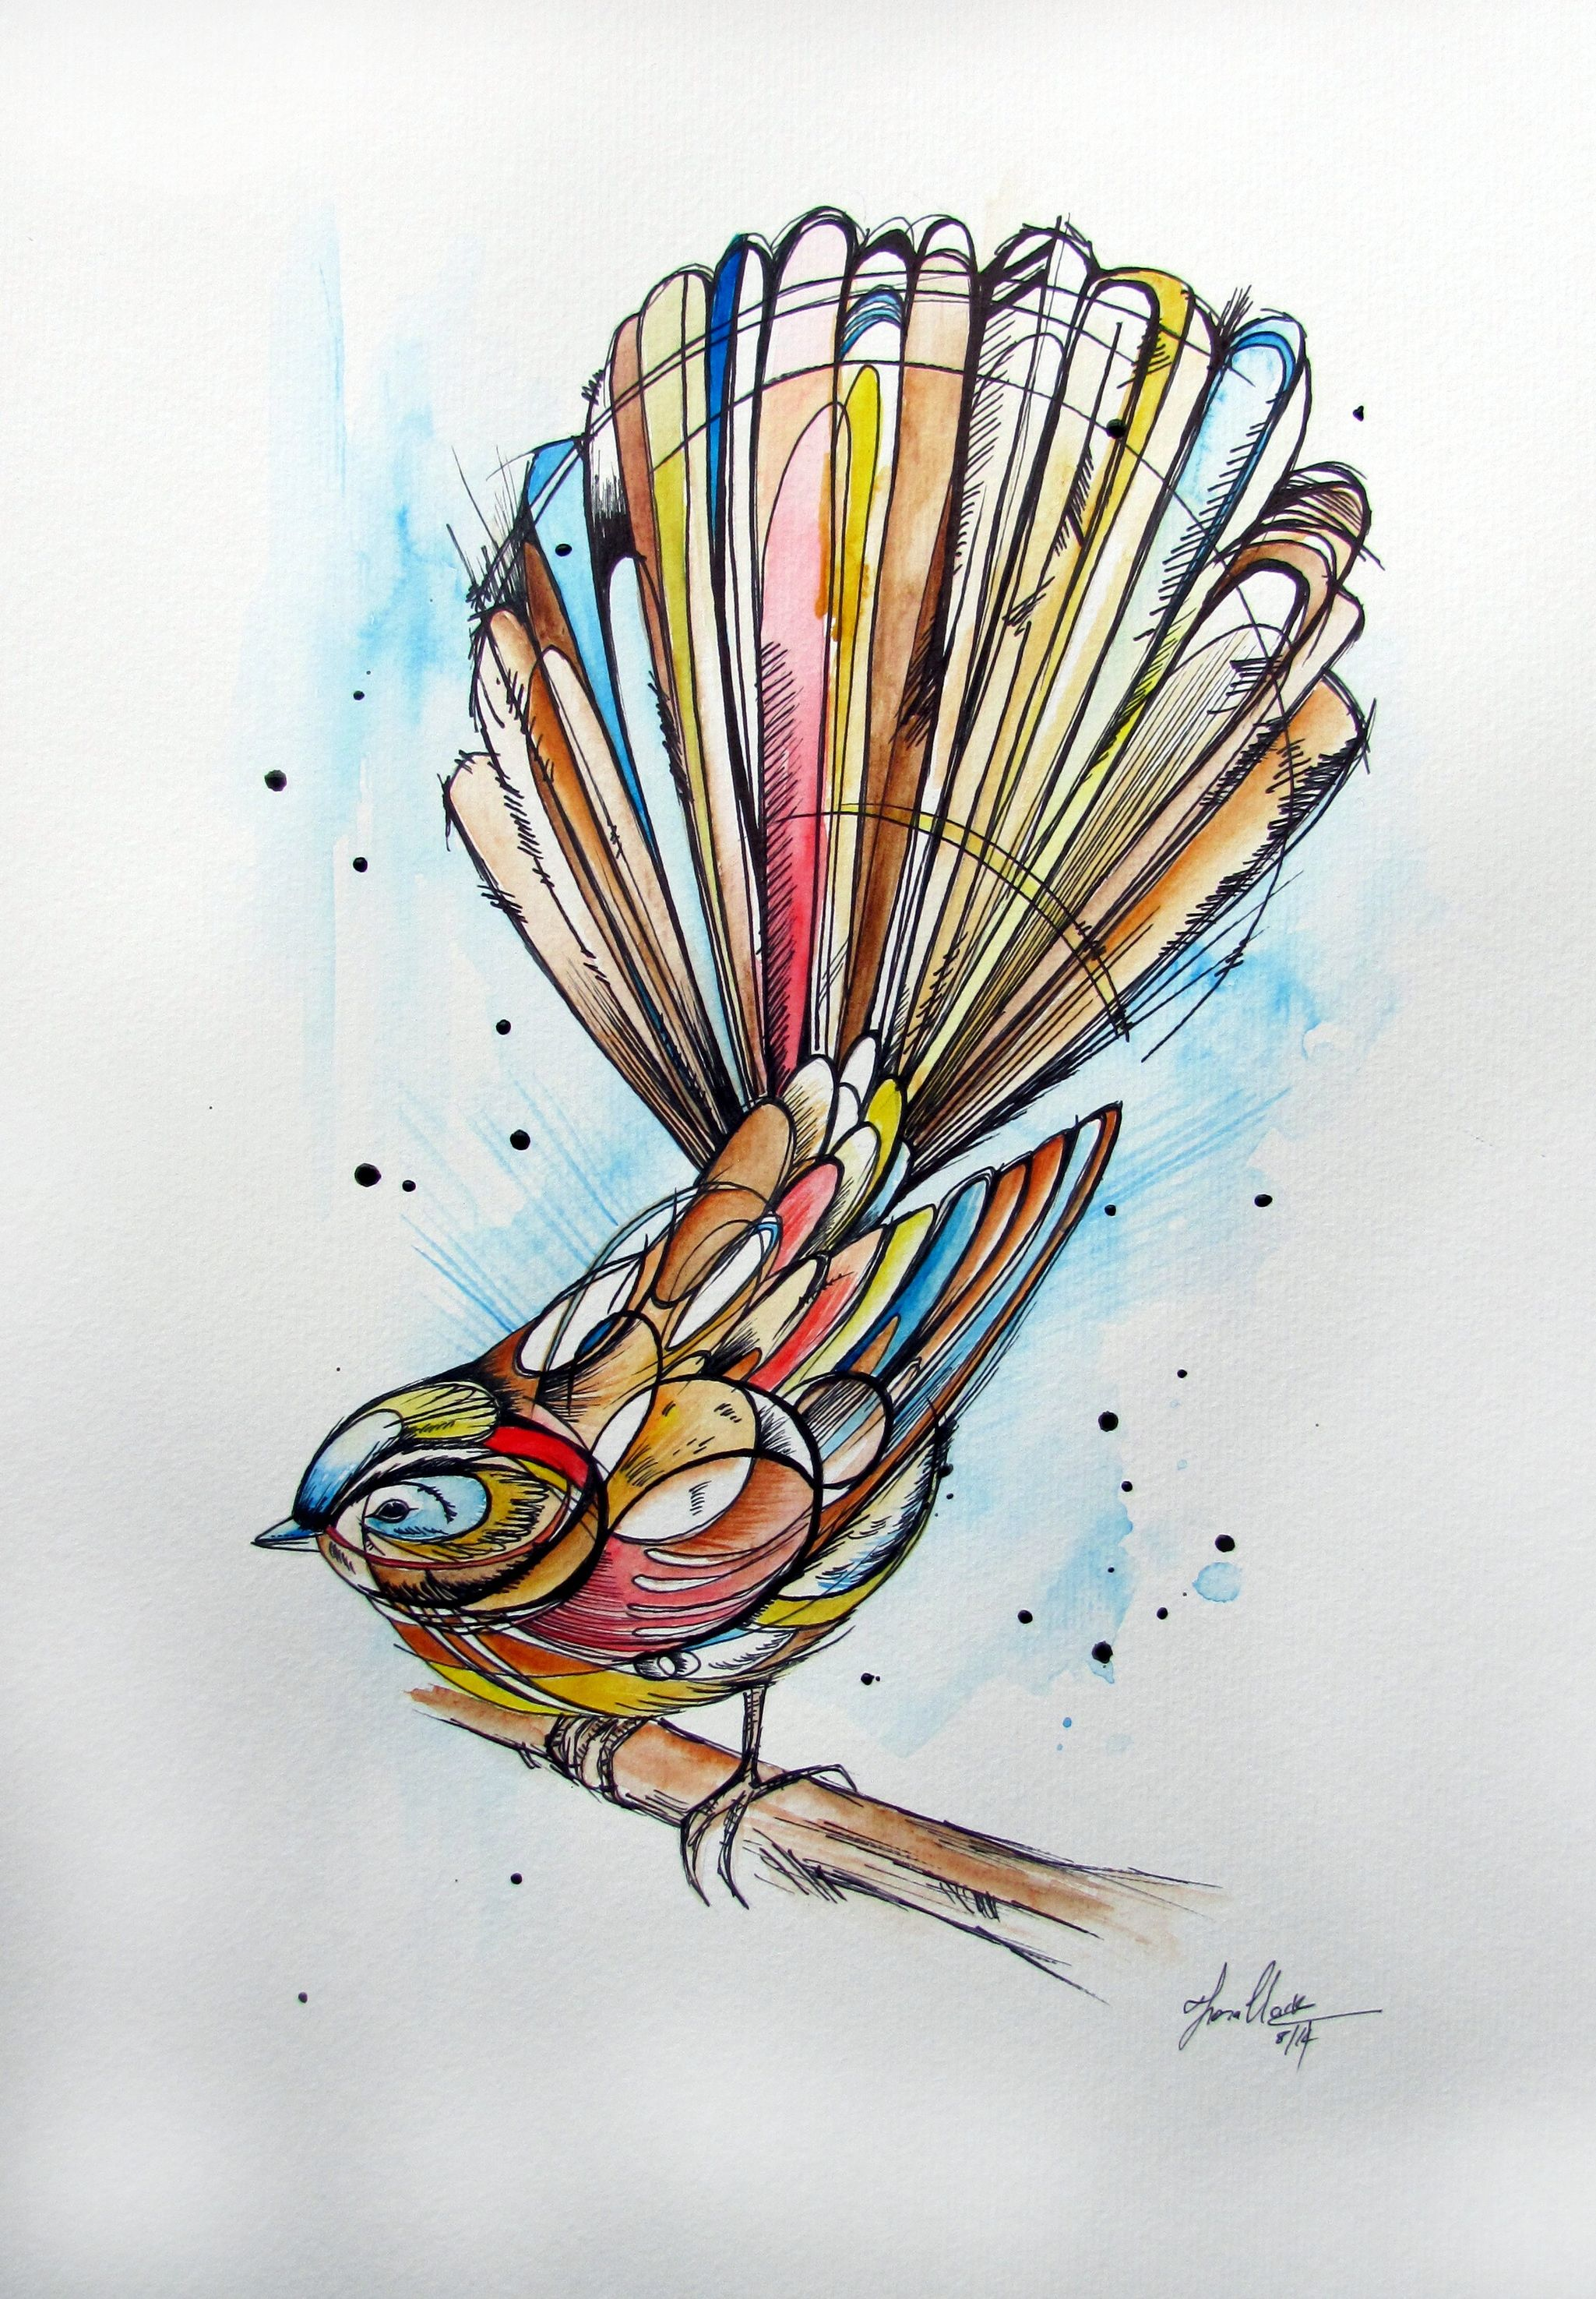 Birds Tattoos Illustrations: Tattoo Fantail Watercolor Painting/illustration By Www